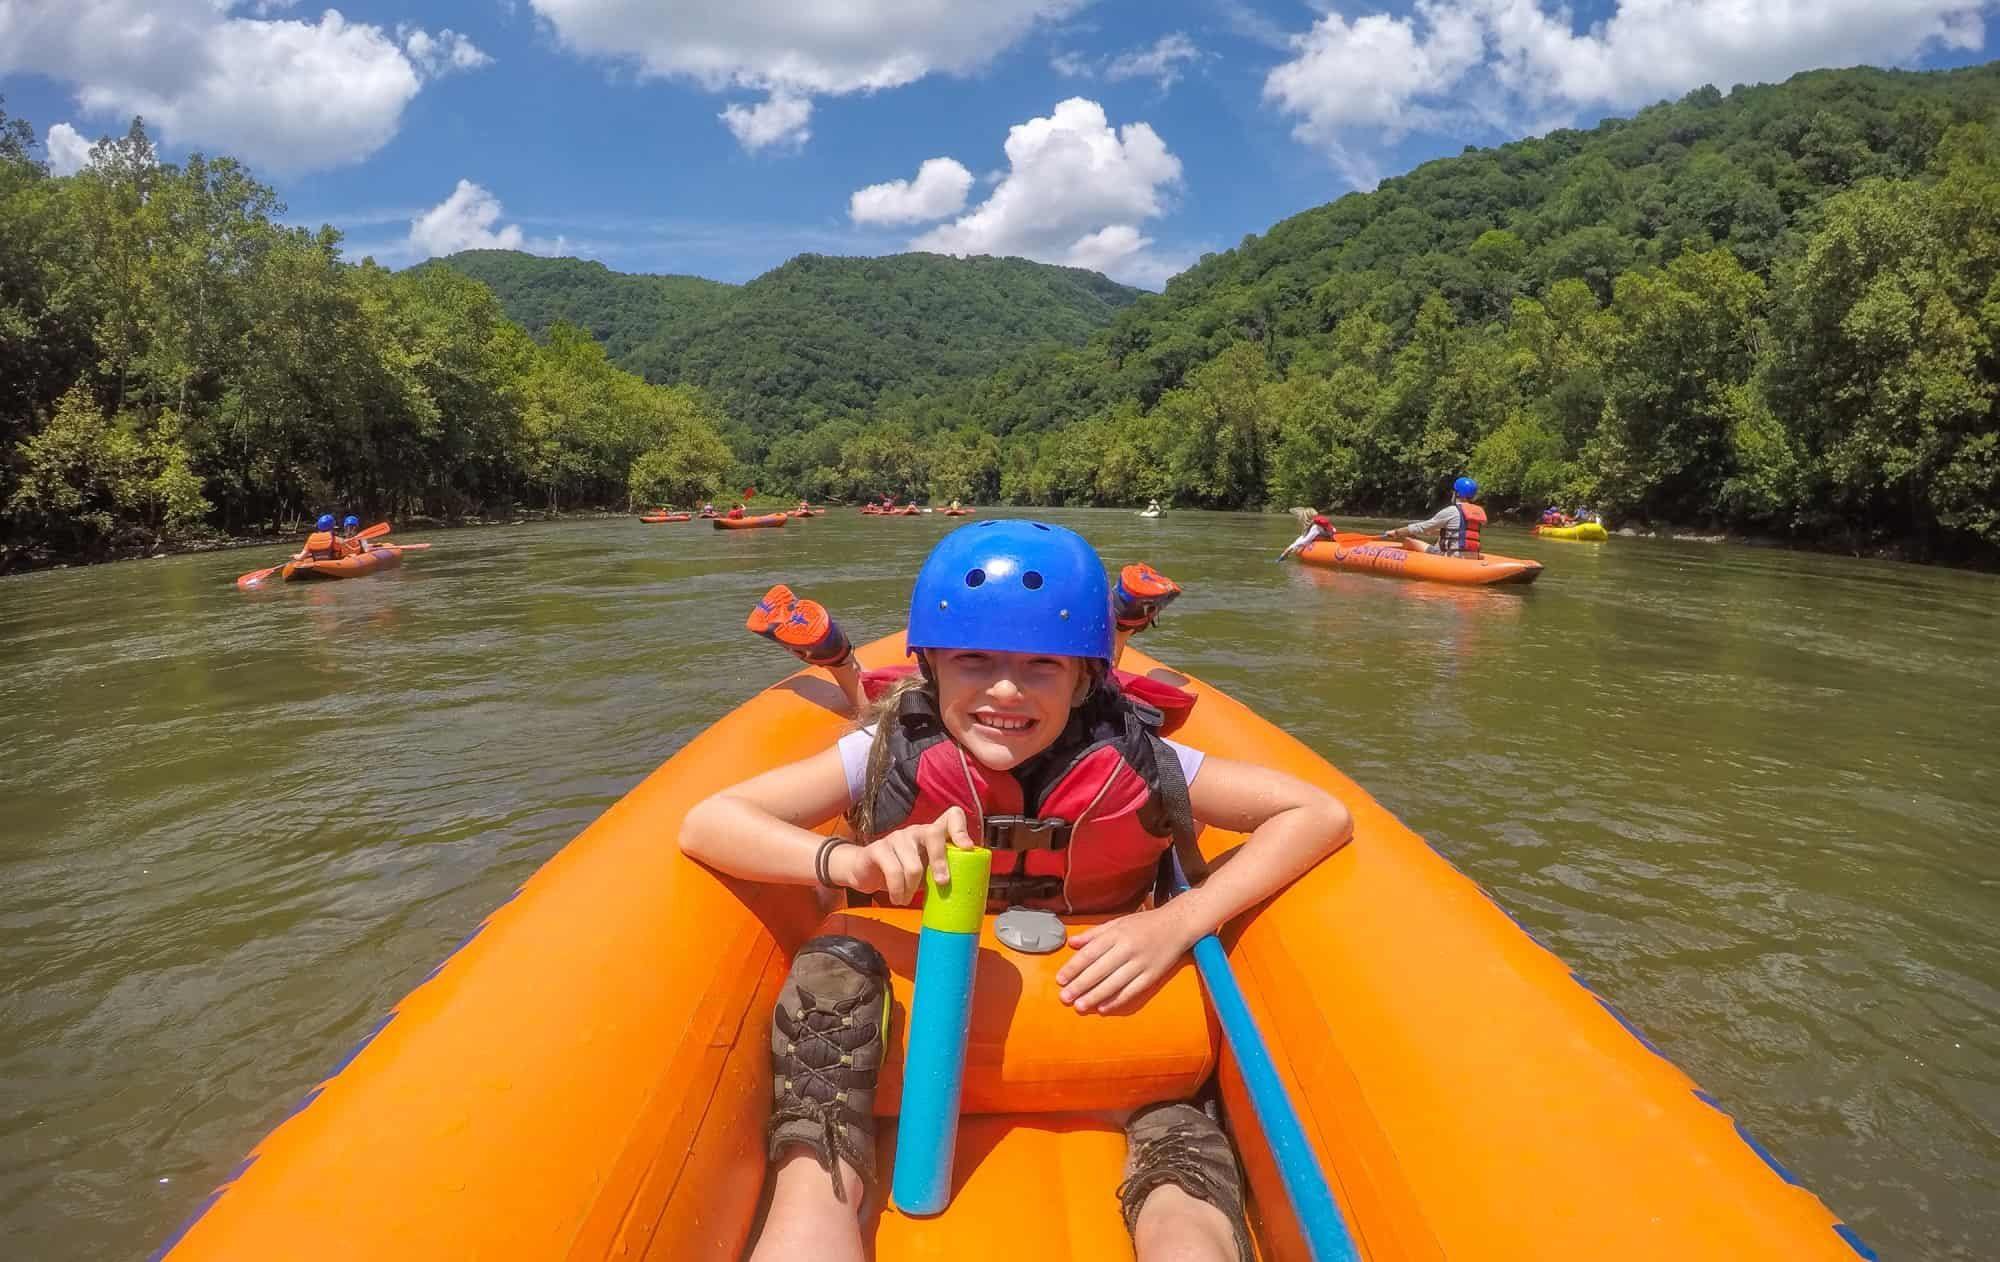 Go New River Rafting With Kids At Adventures On The Gorge